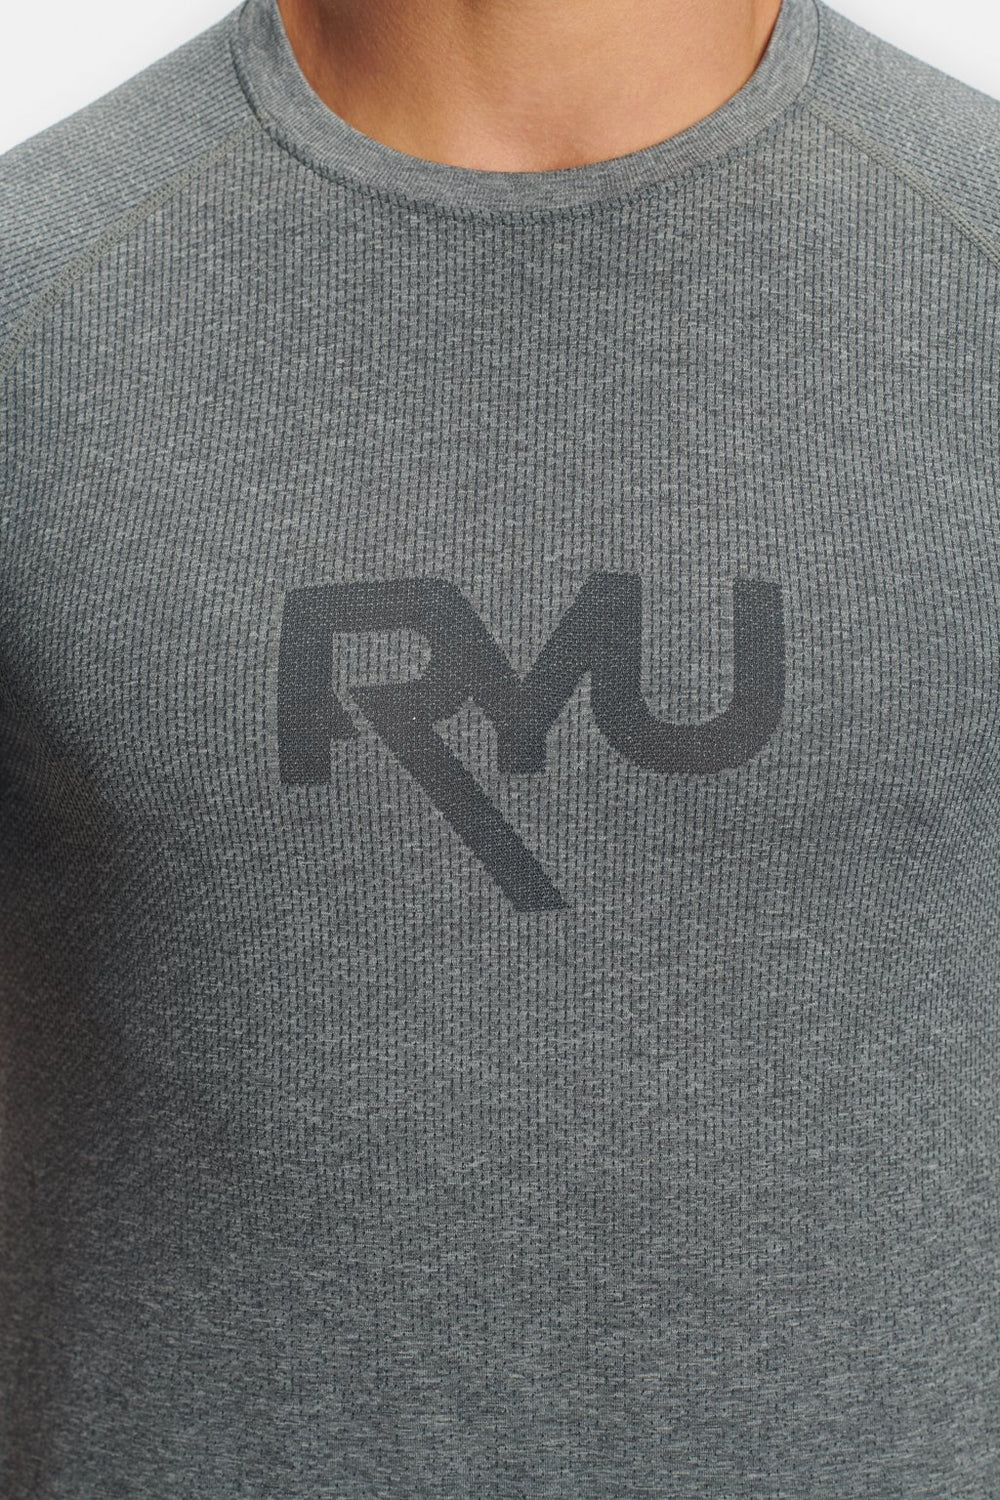 RYU Mens Graphic Vapor Crew Neck in Cement